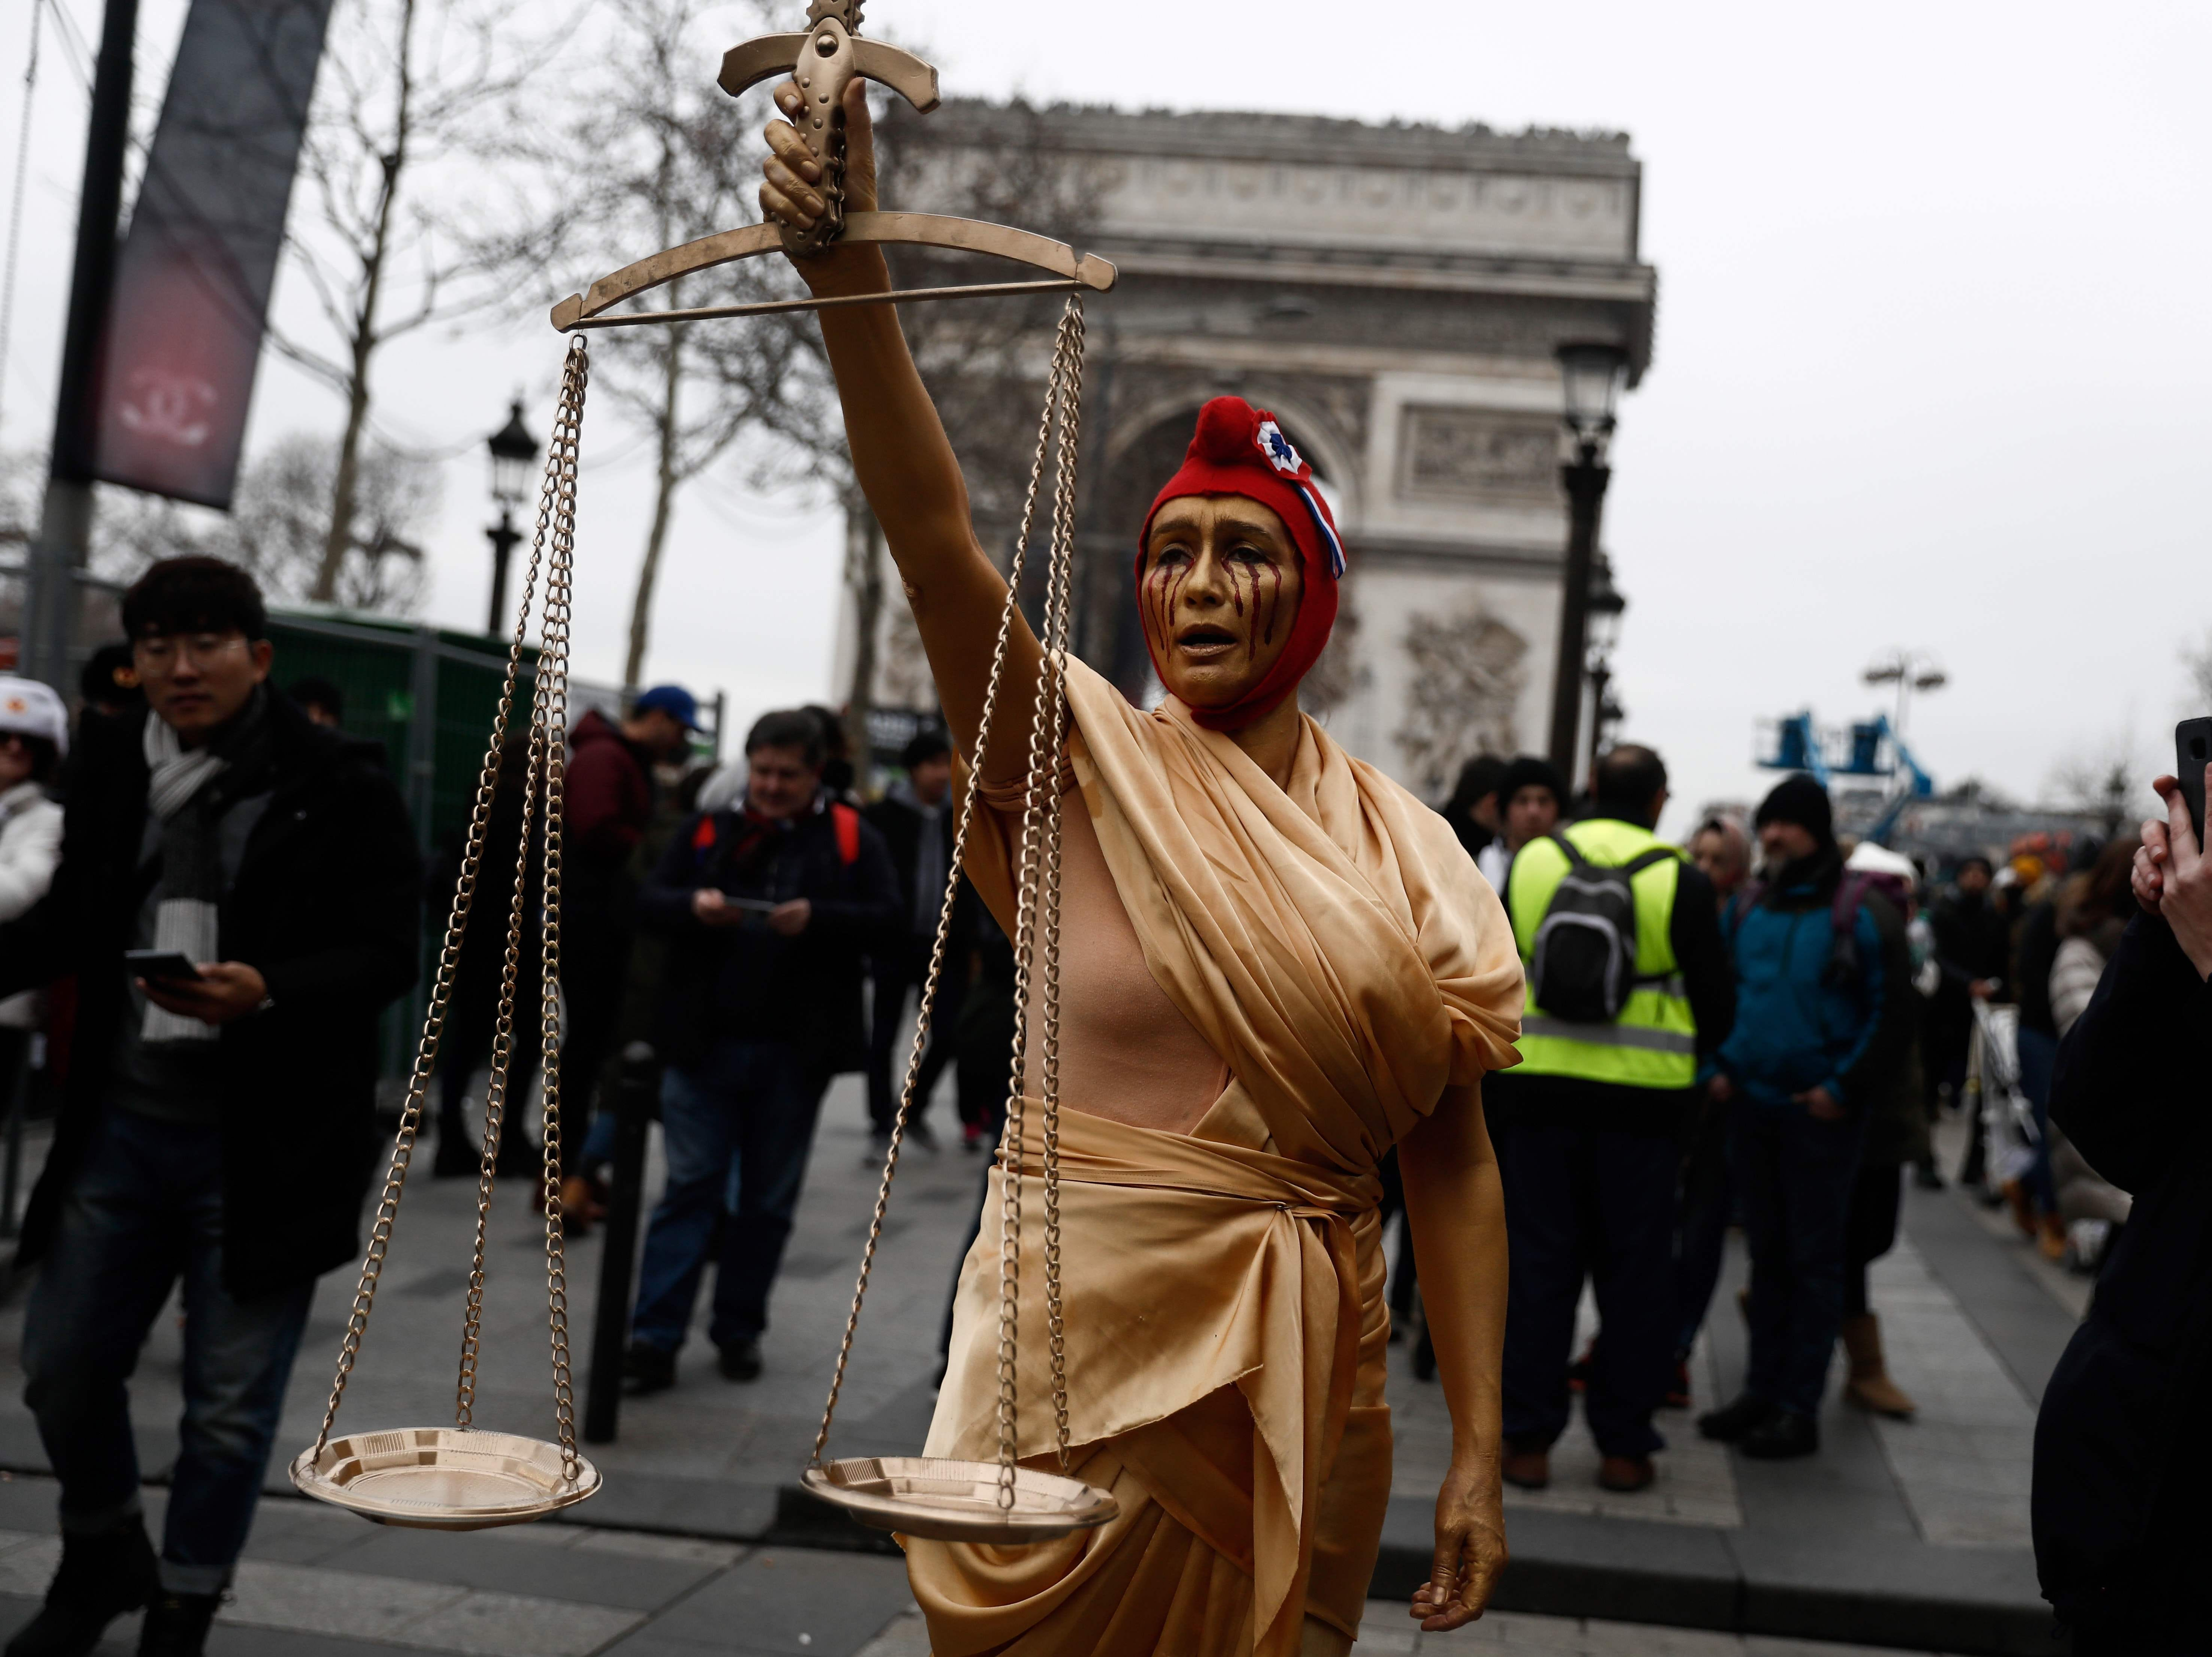 A woman dressed as the Lady Justice and wearing a Phrygian cap walks down the Champs Elysee avenue near the Arc de Triomphe, in Paris, on Dec. 29, 2018 during a demonstration called by the yellow vests (gilets jaunes) movement, to protest against the rising costs of living they blame on high taxes.